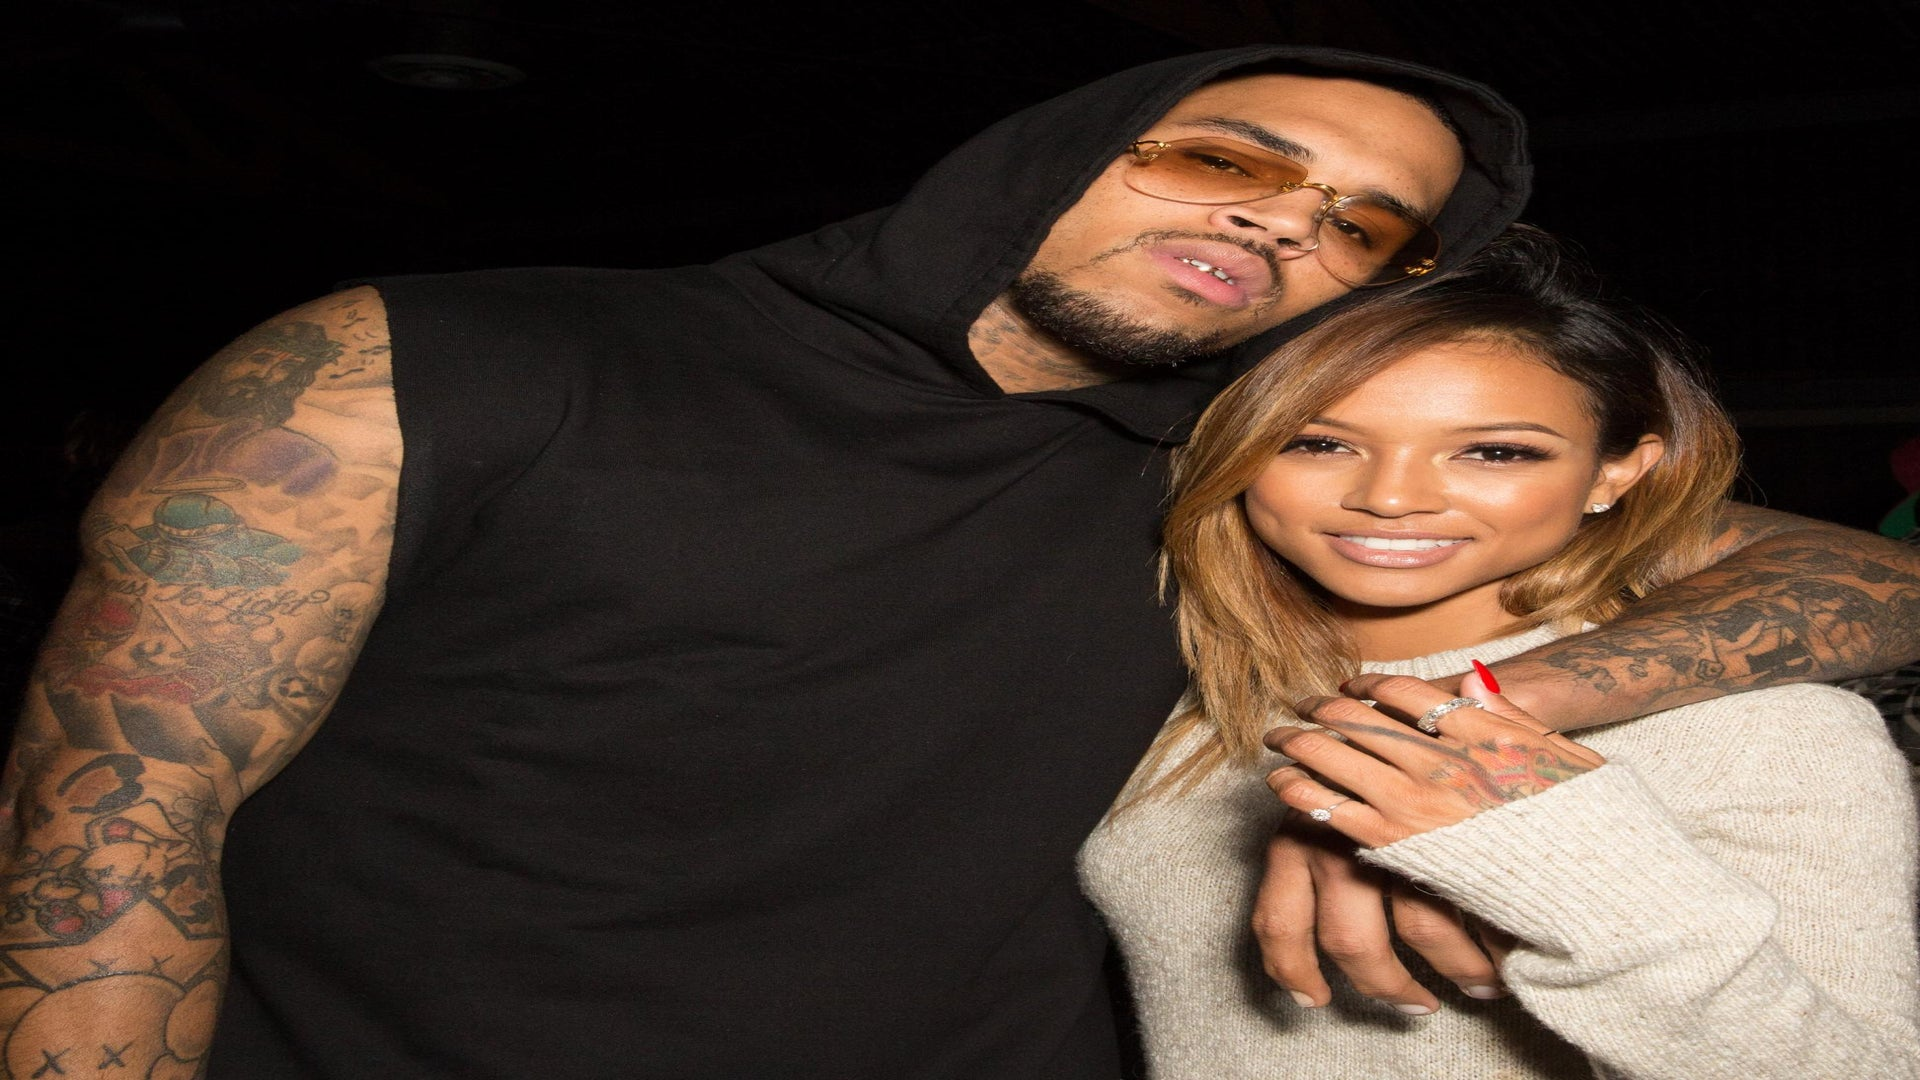 Chris Brown And Karrueche: Here's Why You Shouldn't Victim Blame